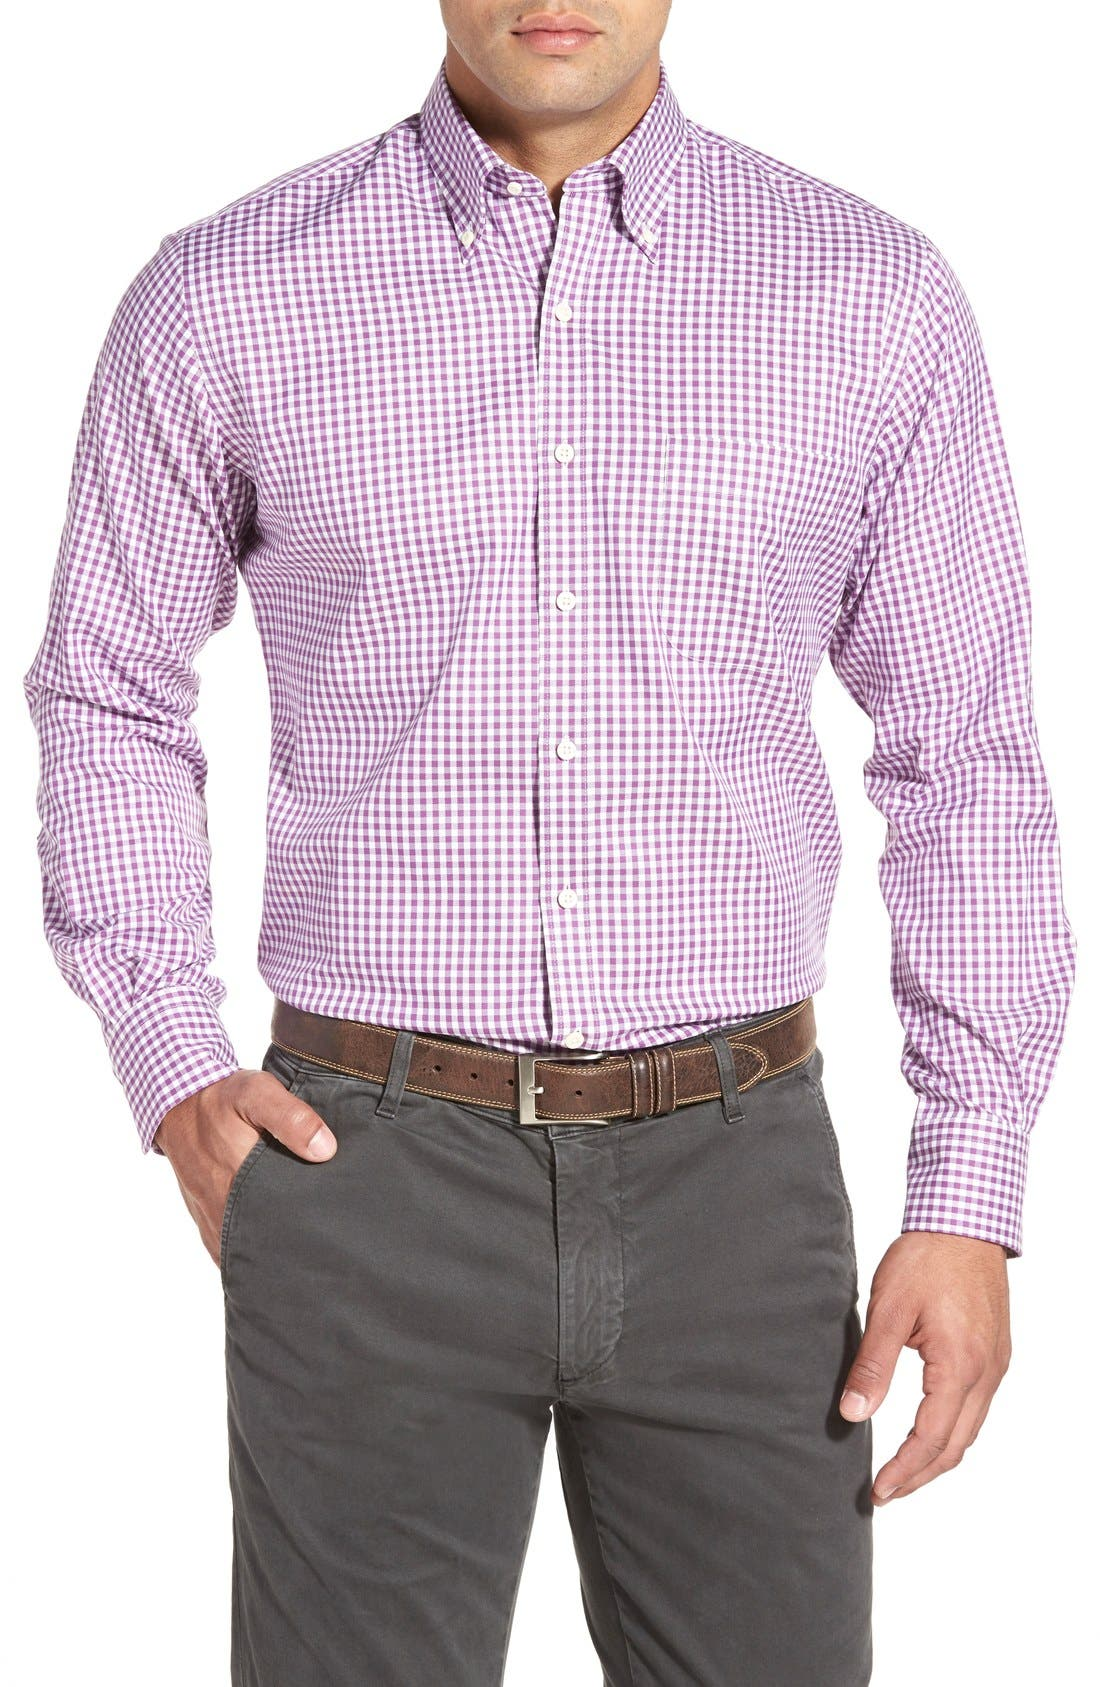 'Nanoluxe' Regular Fit Wrinkle Resistant Twill Check Sport Shirt,                         Main,                         color, Purple